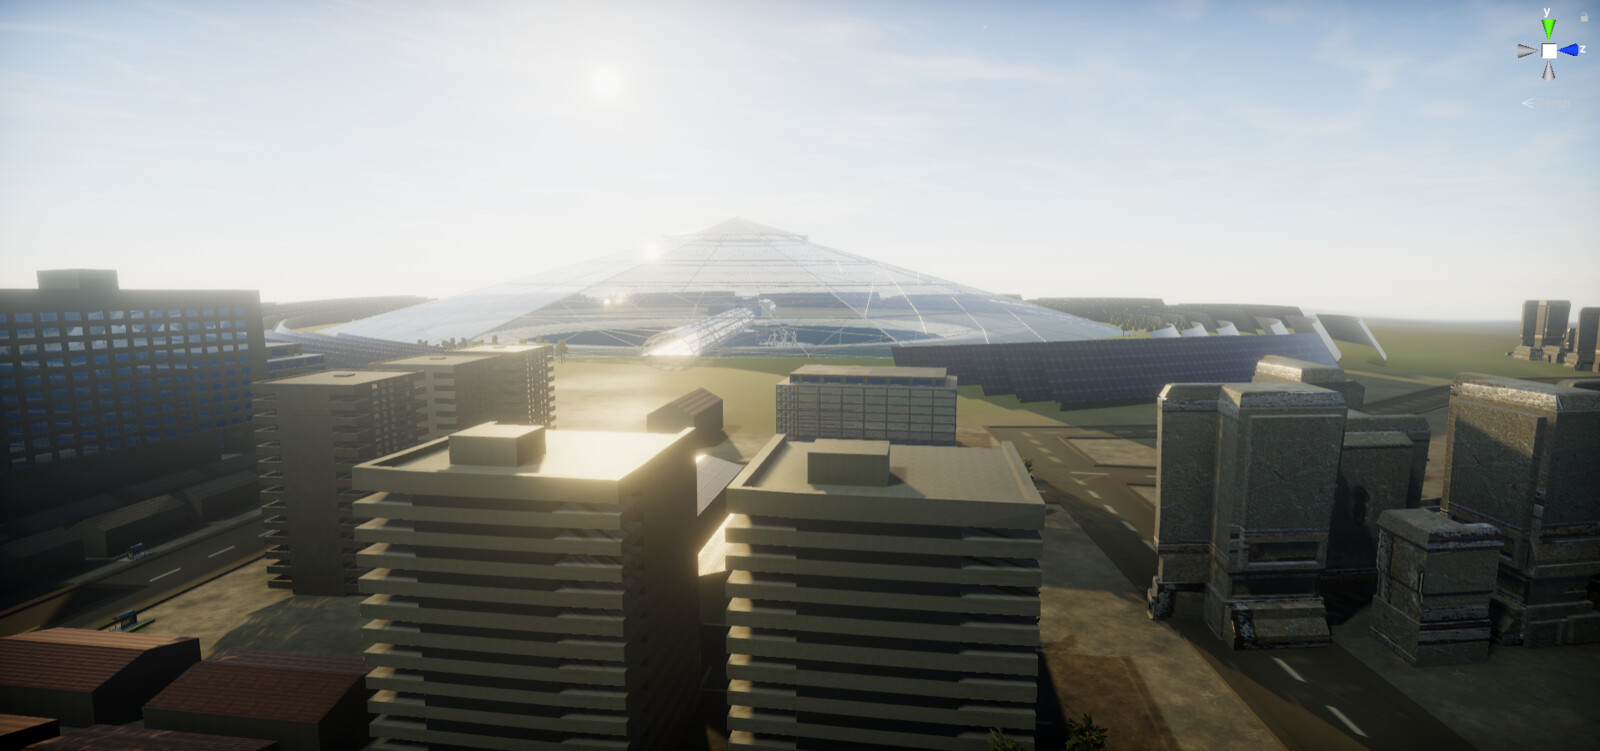 The buildings surrounding the dome - Unity screenshot.